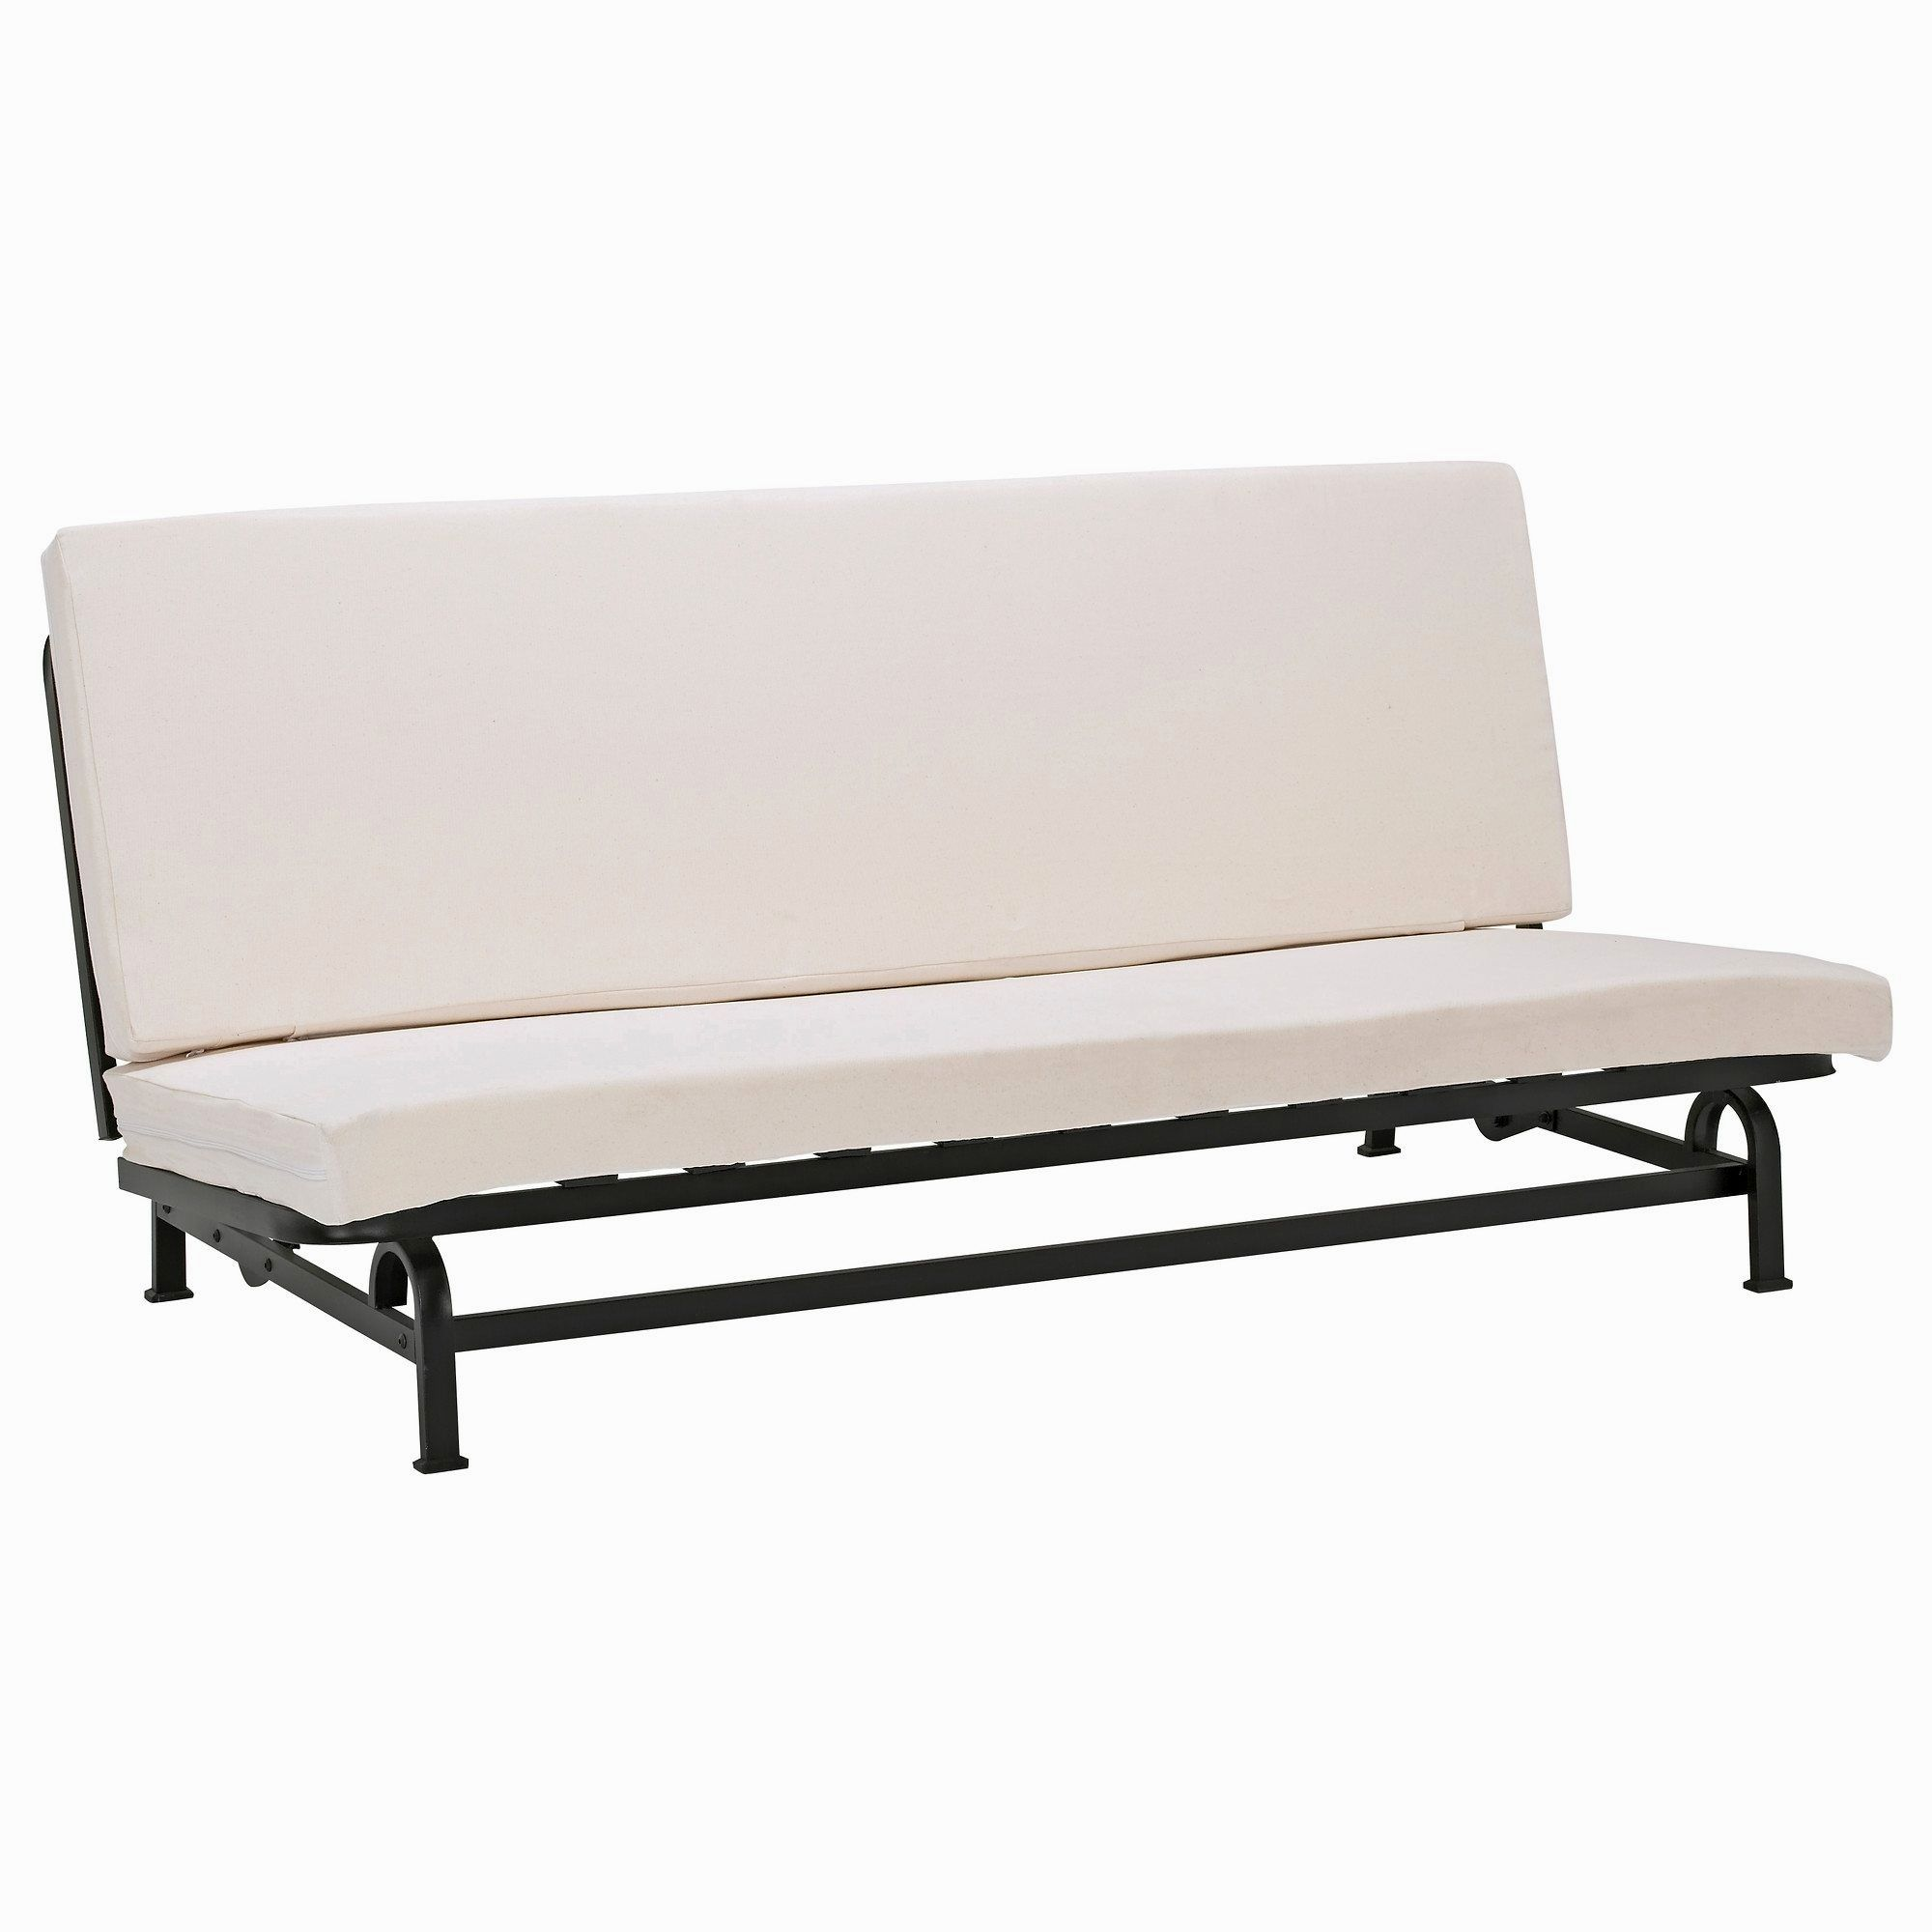 excellent modern sofa beds gallery-Wonderful Modern sofa Beds Collection